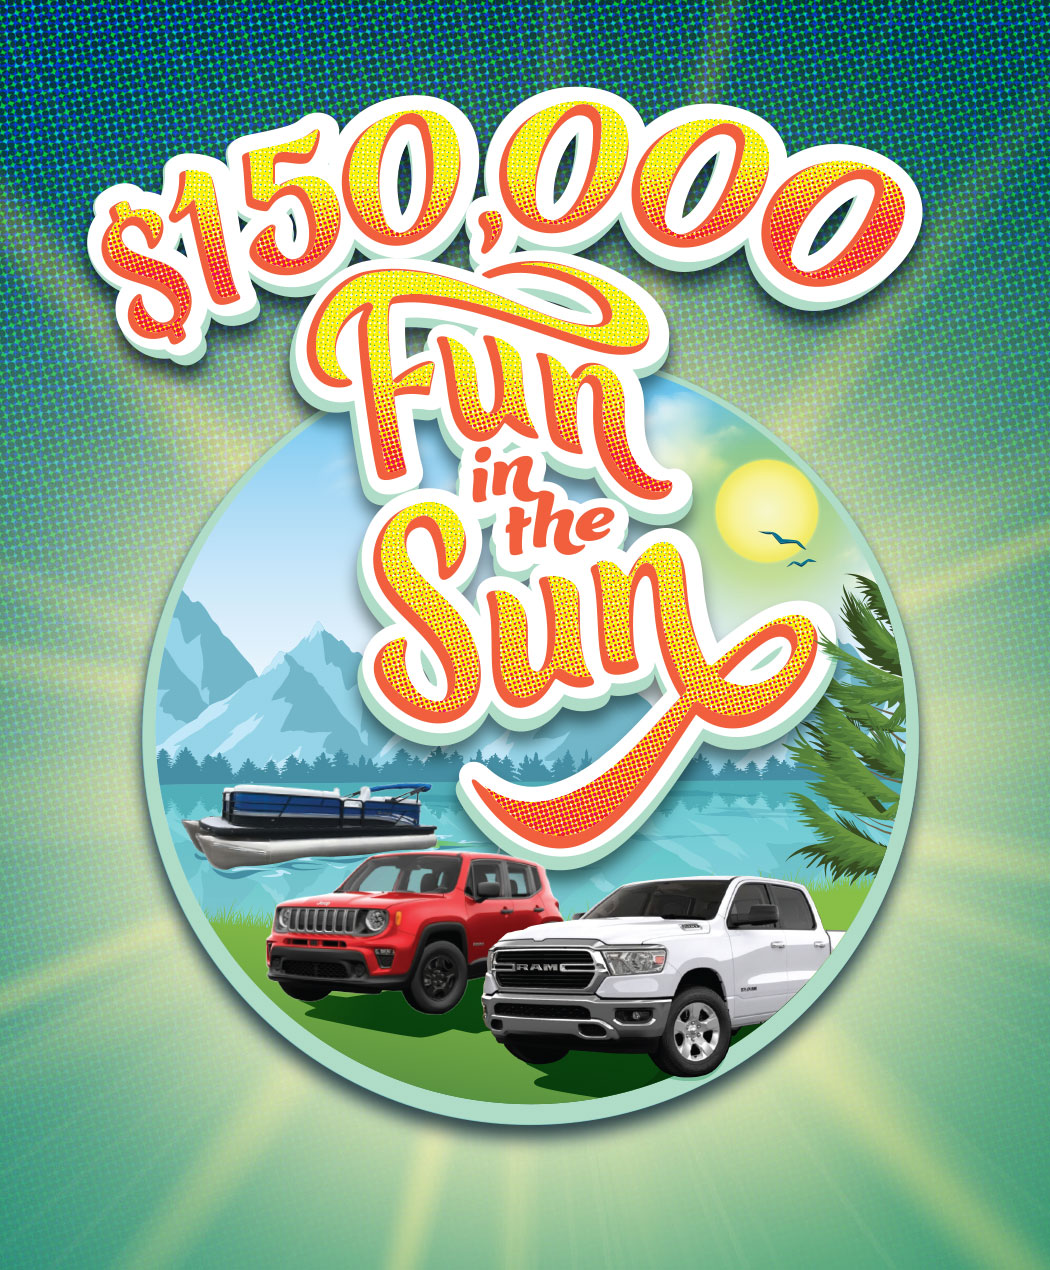 $150,000 Fun in the Sun